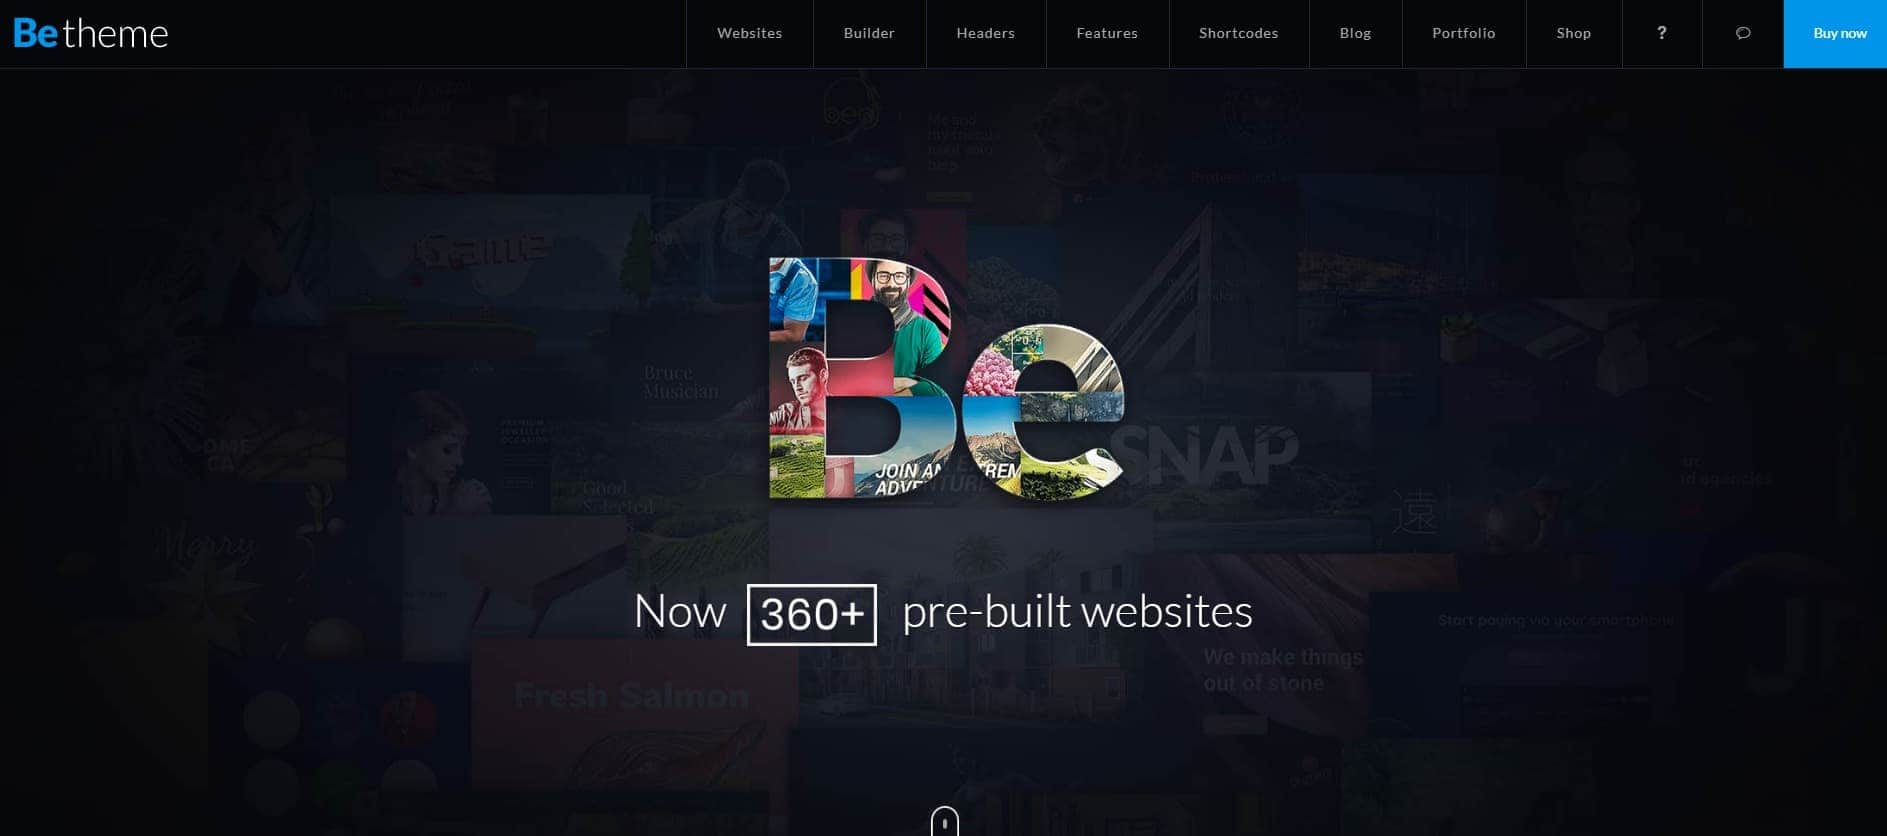 be-theme-best-wordpress-theme